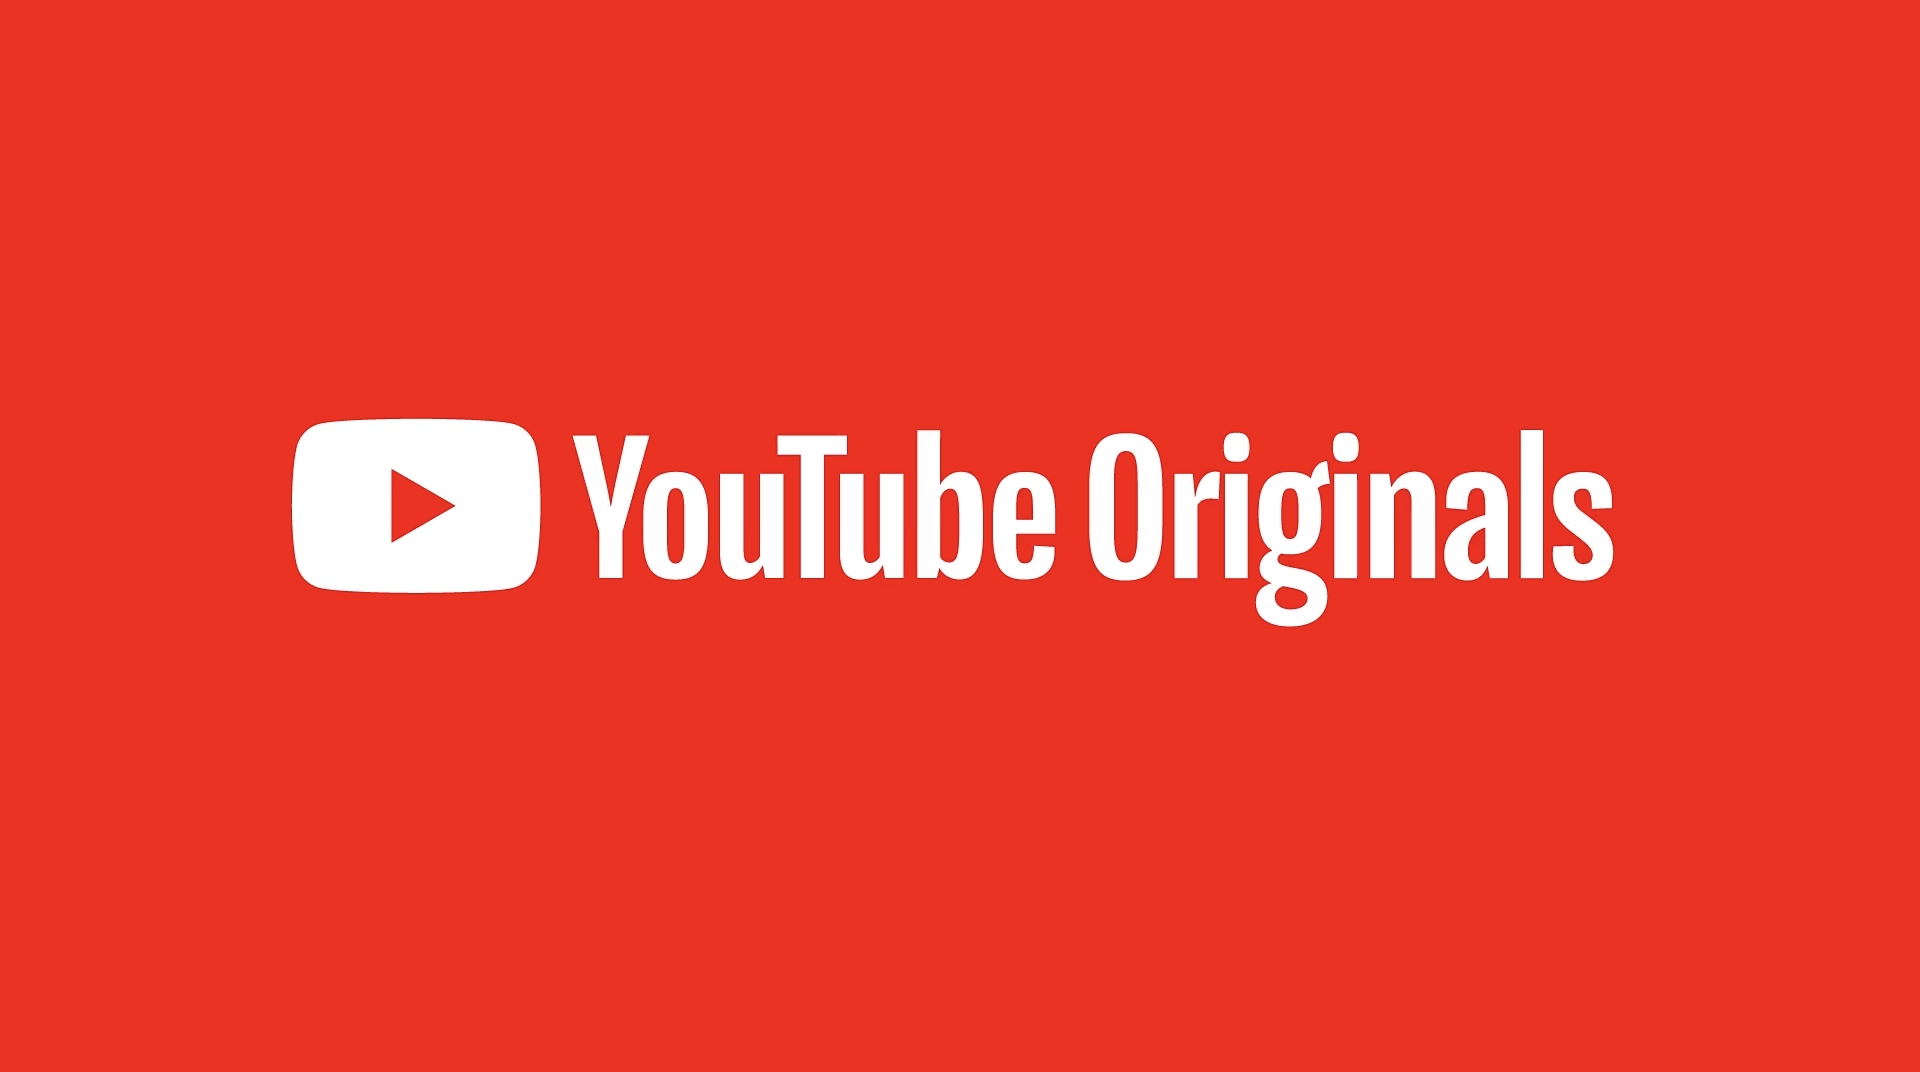 Youtube originals